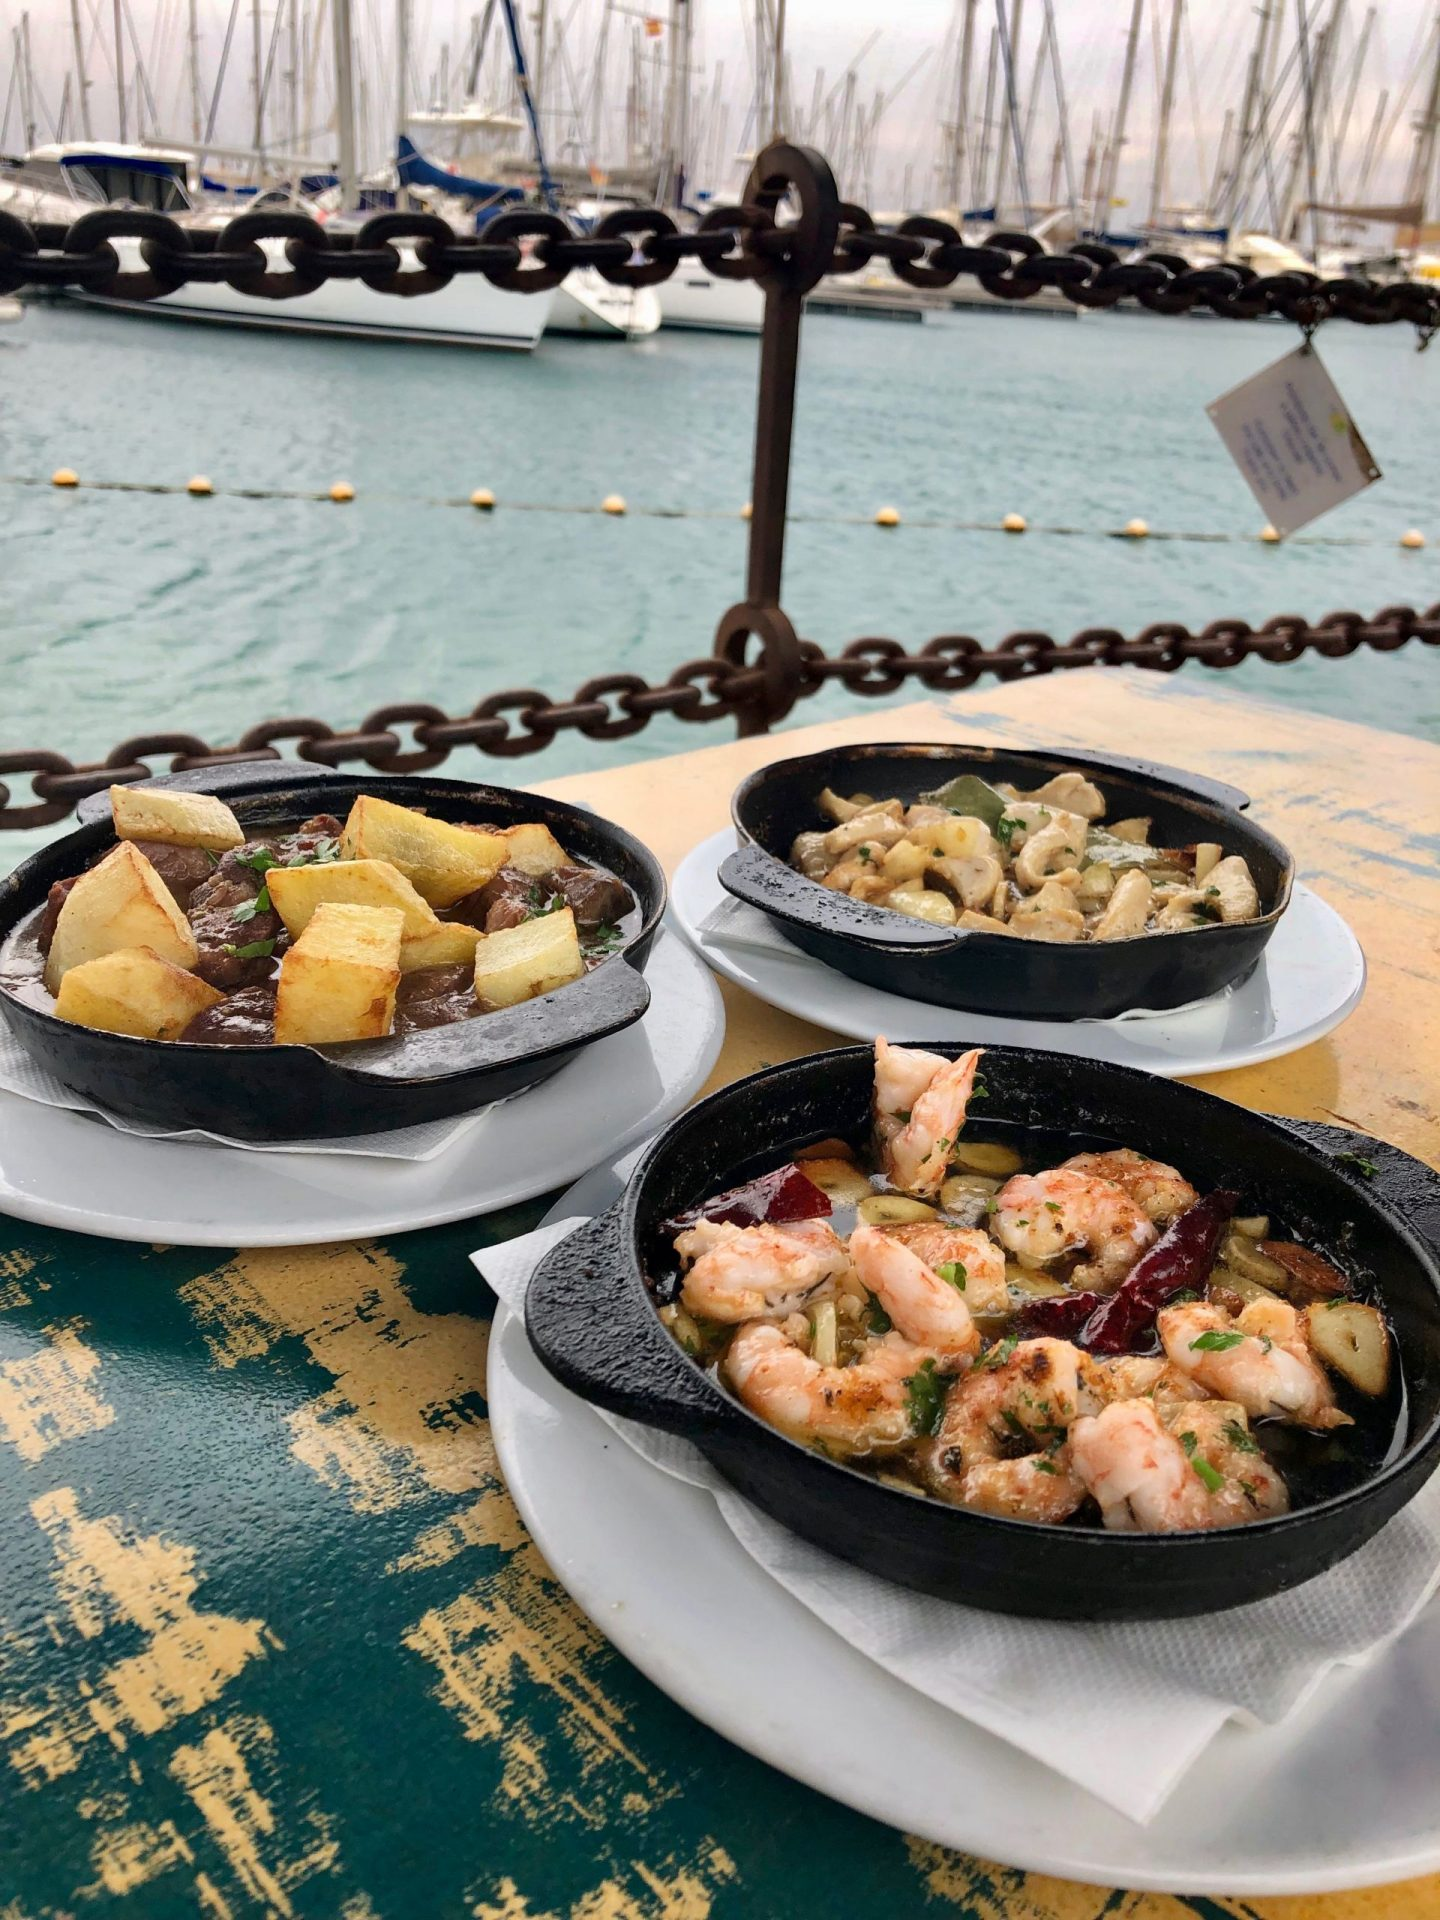 best tapas restaurants playa blanca lanzarote - 3 tapas dishes including prawns, stew and garlic chicken